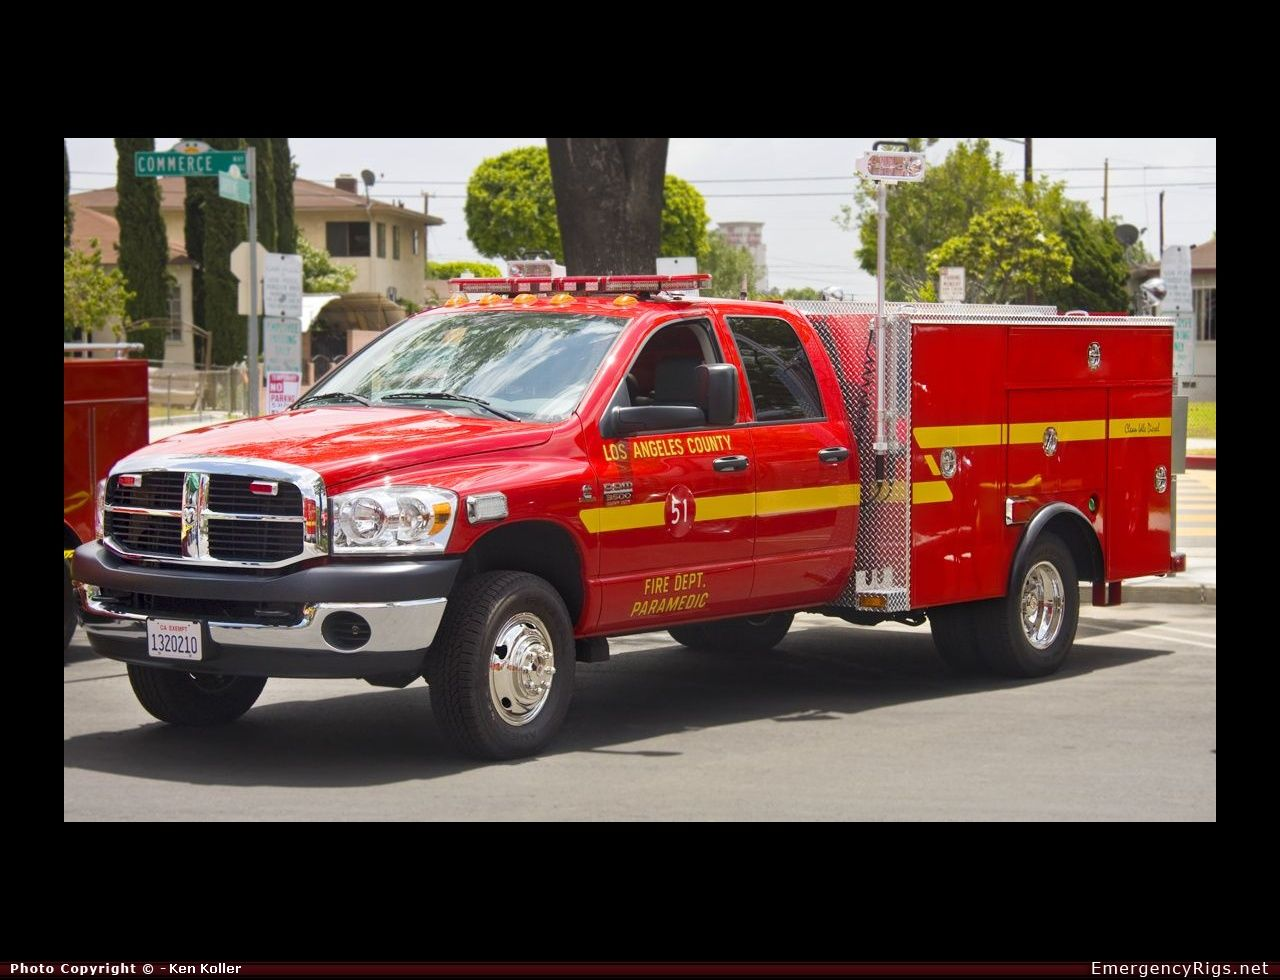 Fire Truck Photos Dodge Rescue Los Angeles County Fire Department Emergency Apparatus Pictures Emergencyrigs Net Fire Trucks Trucks Fire Department